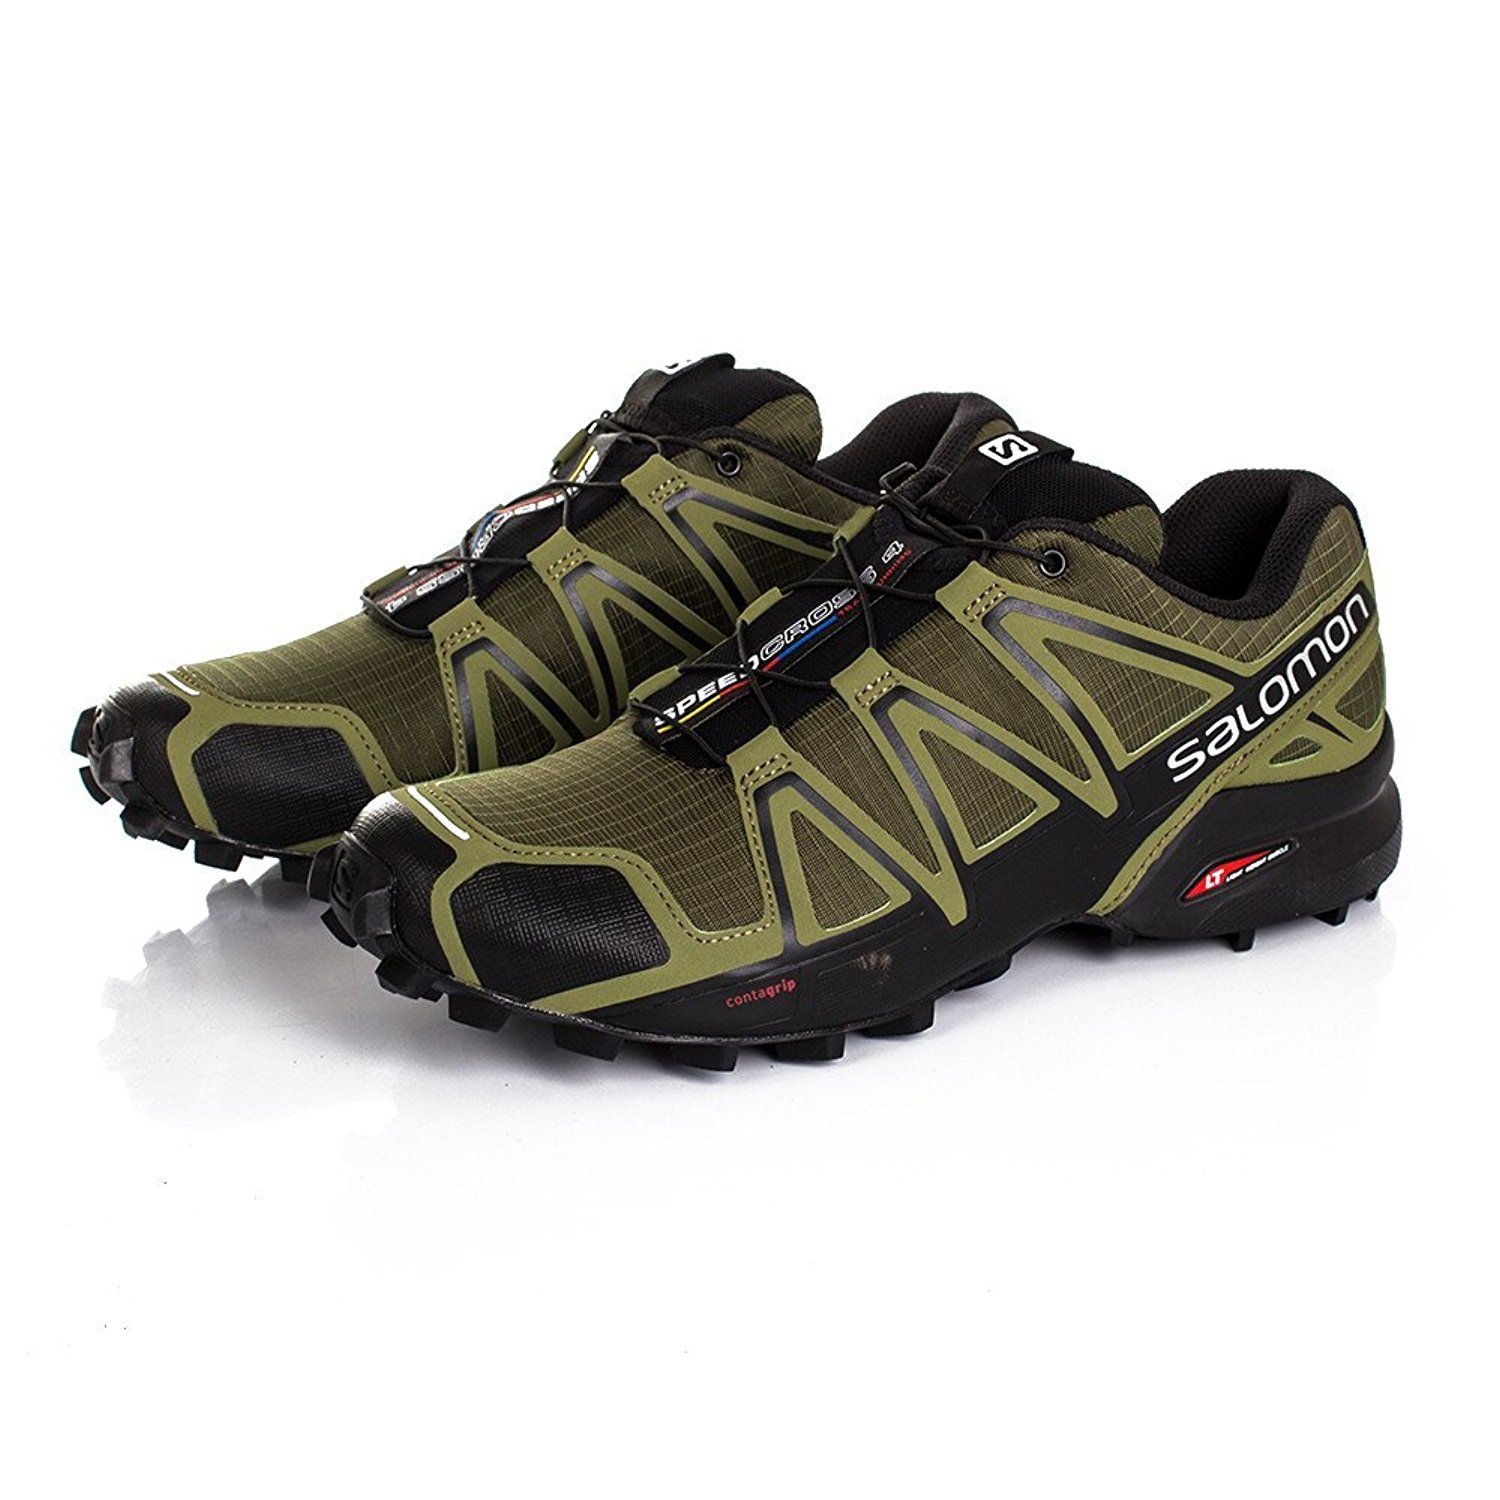 Trail Aw17 it Da 5 Speedcross Amazon Scarpe 45 Corsa Salomon 4 RxqpTIIA